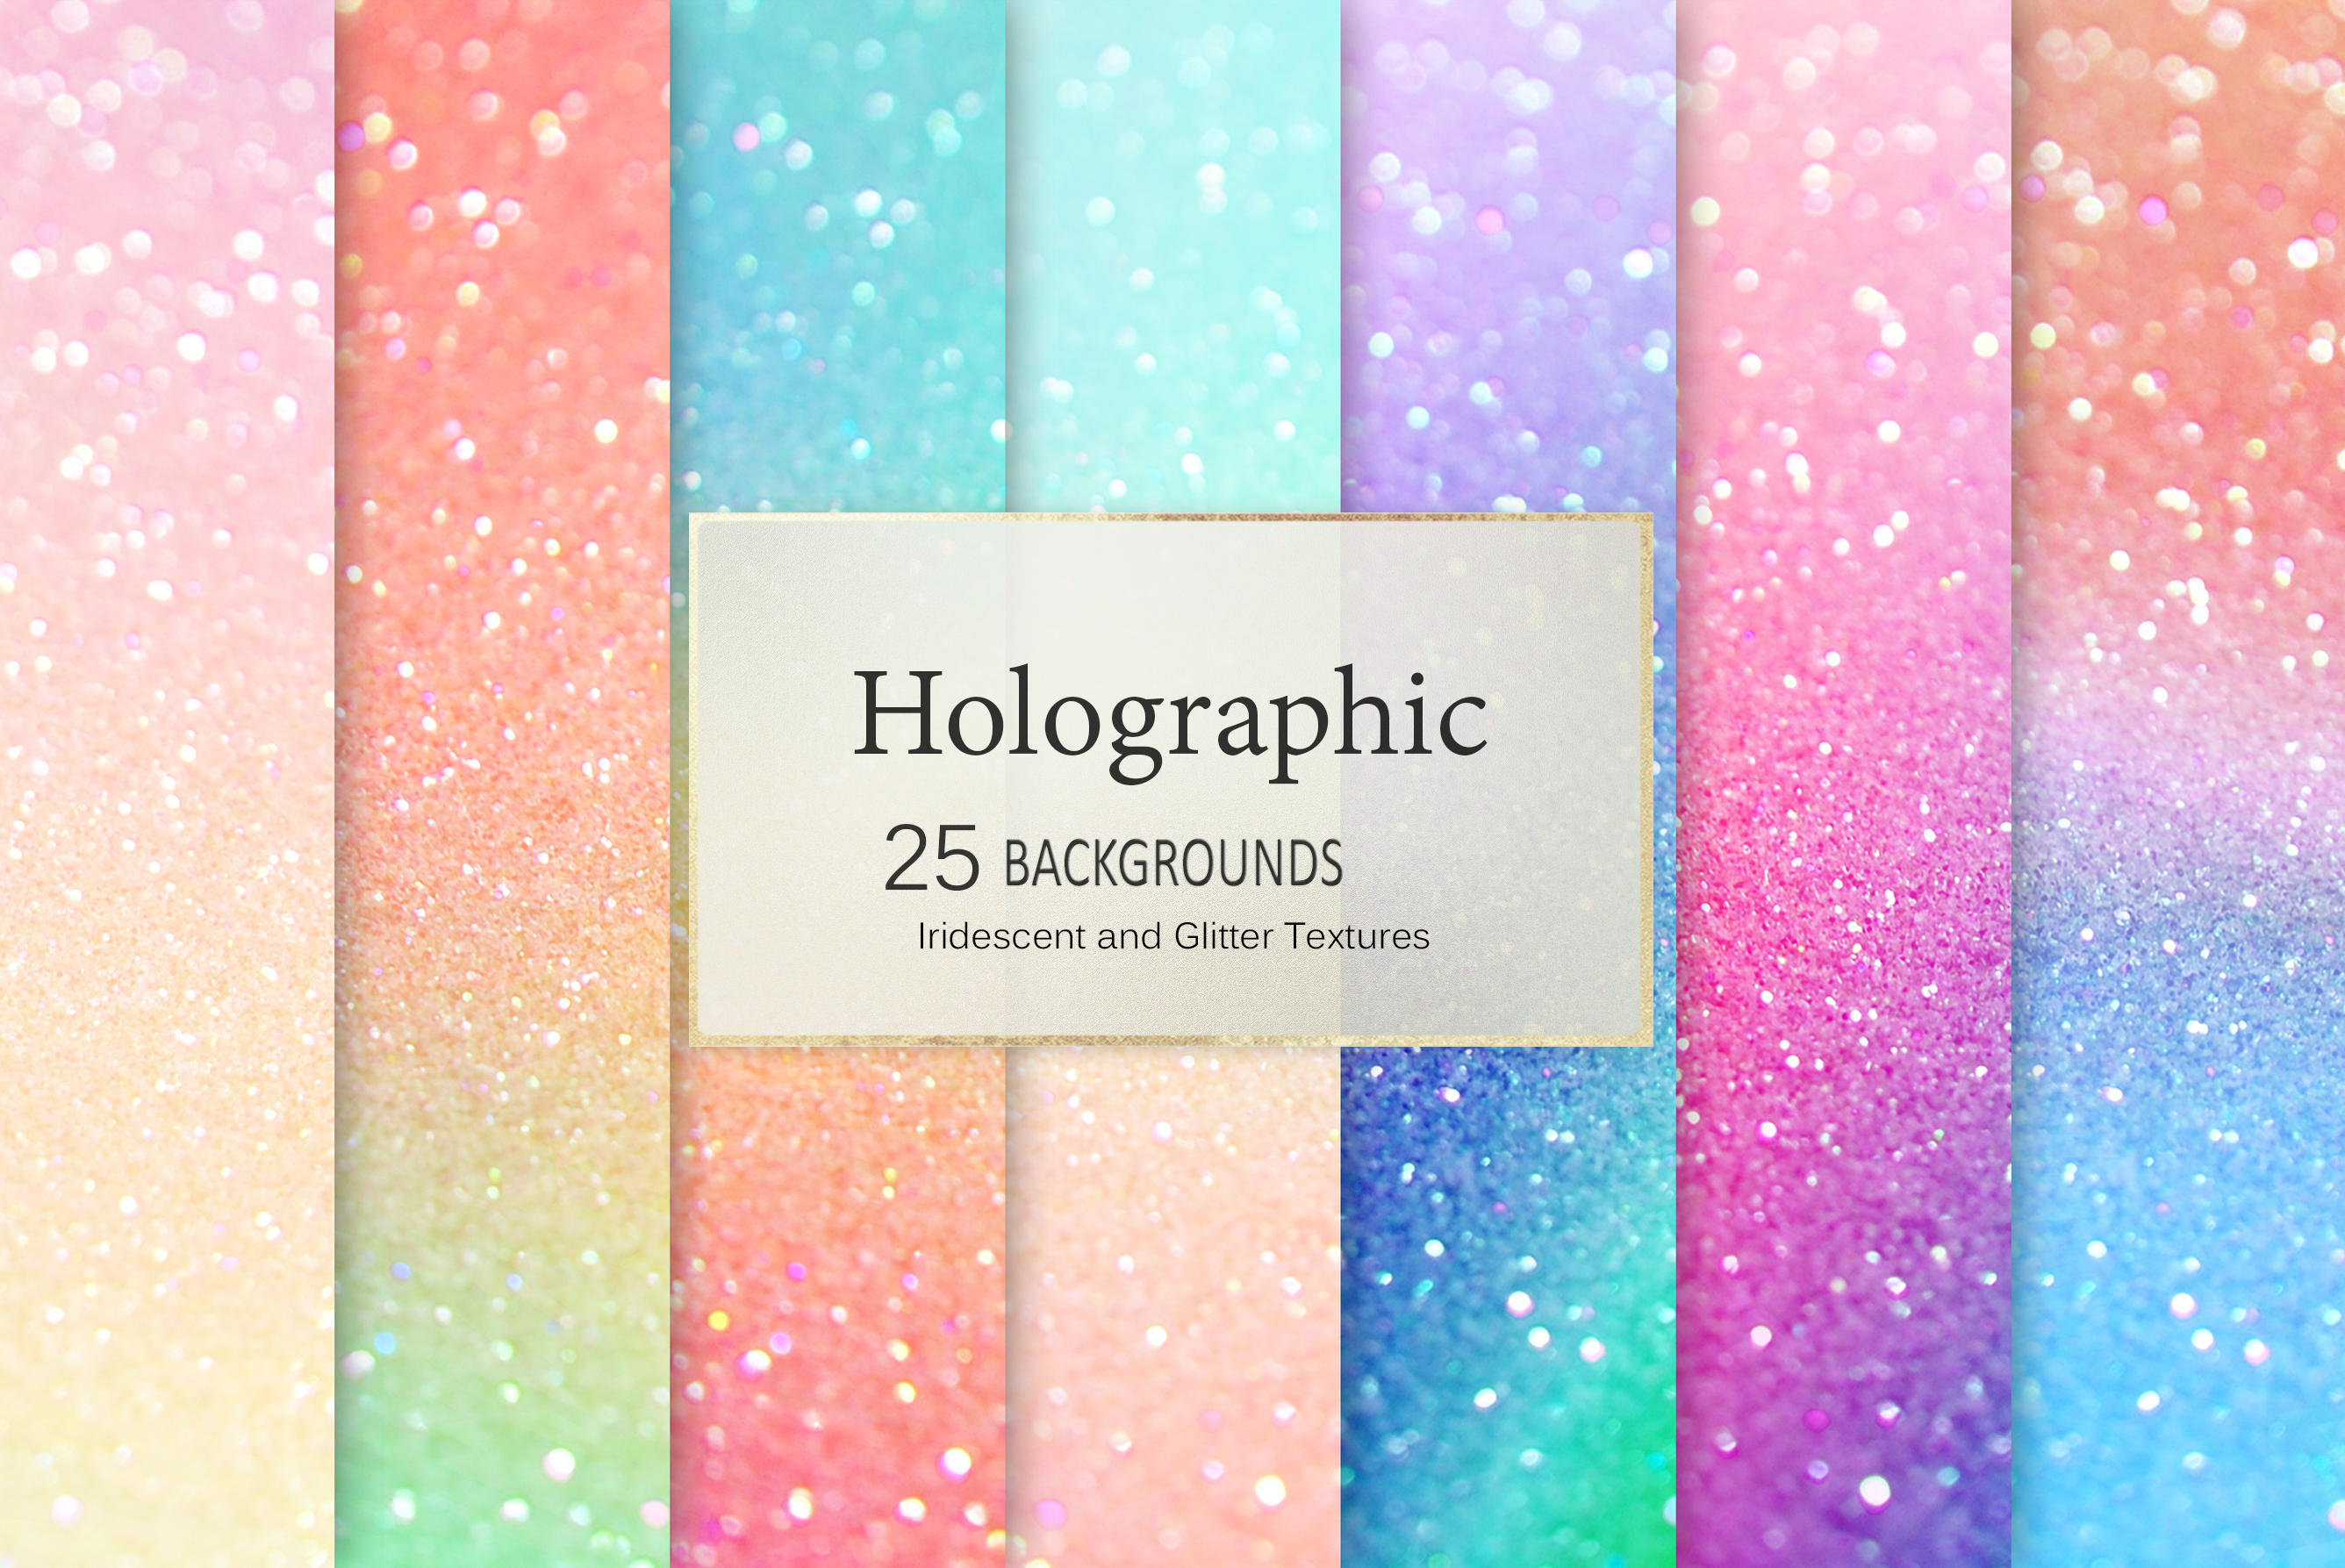 Iridescent 95 Glitter Textures Holographic Backgrounds example image 6